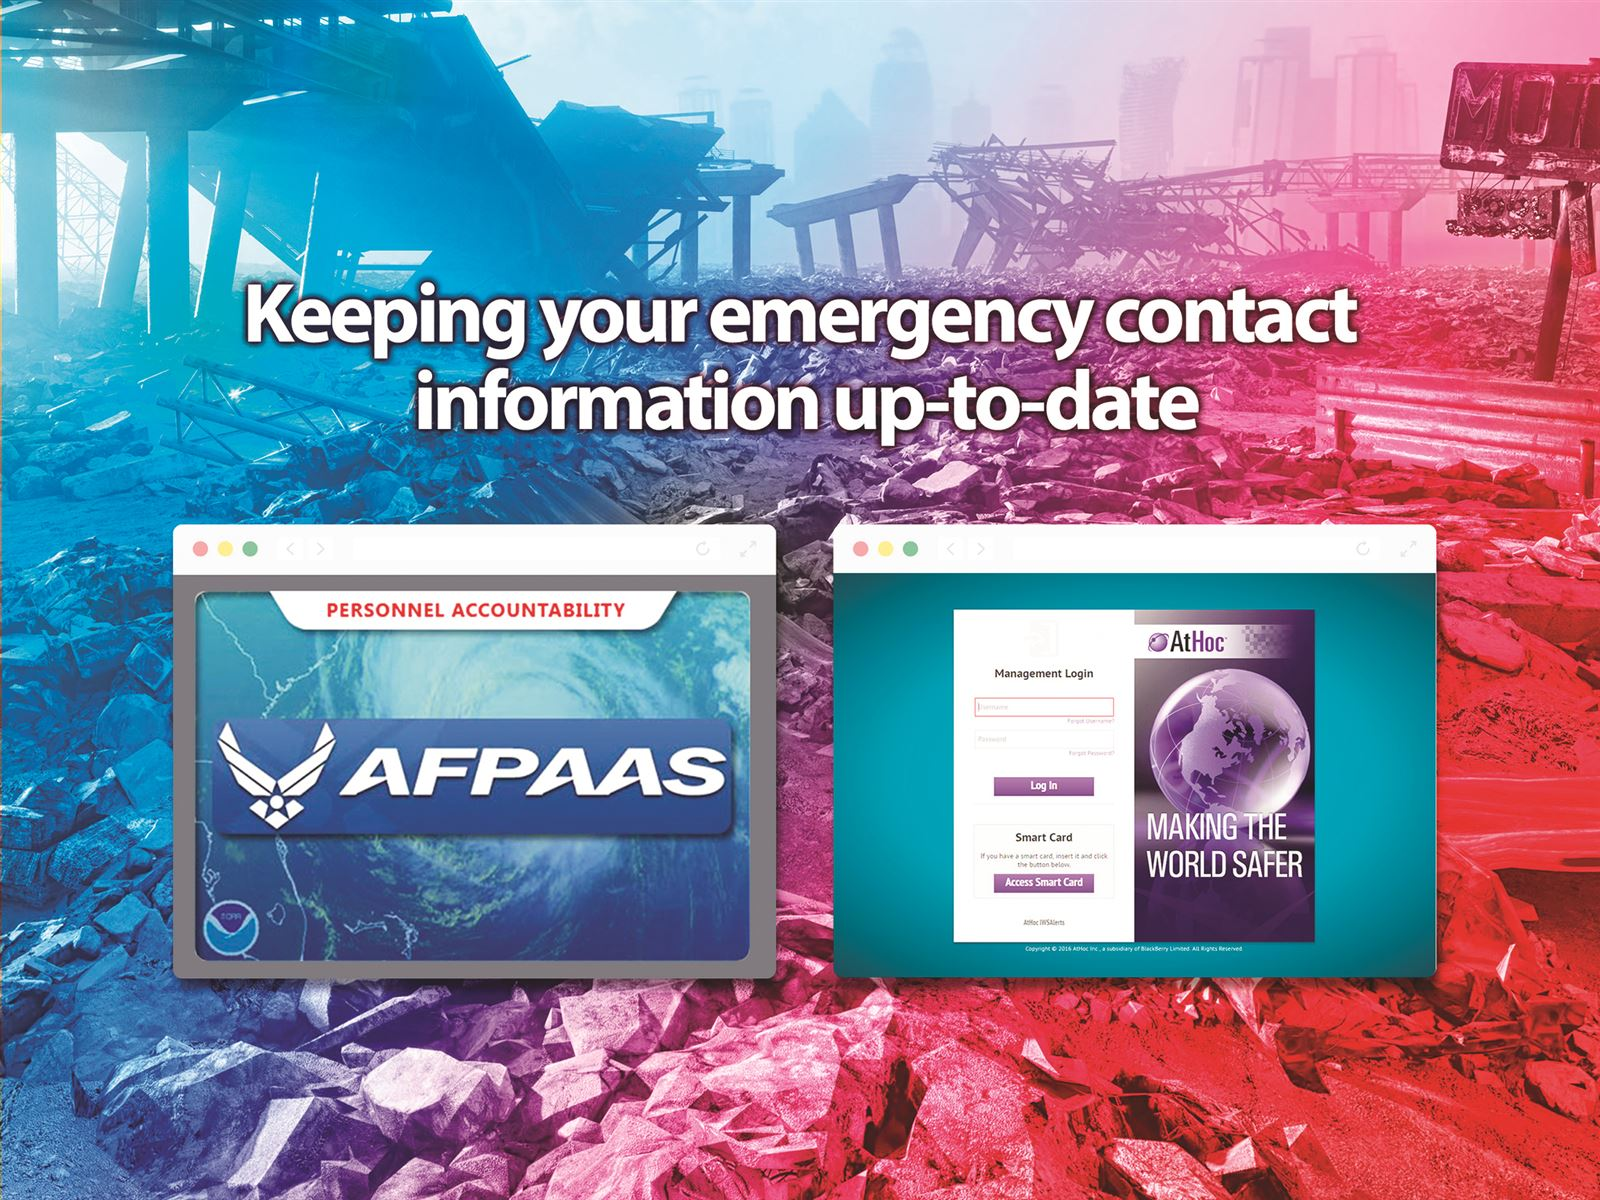 Employees urged to keep emergency contact information up to date